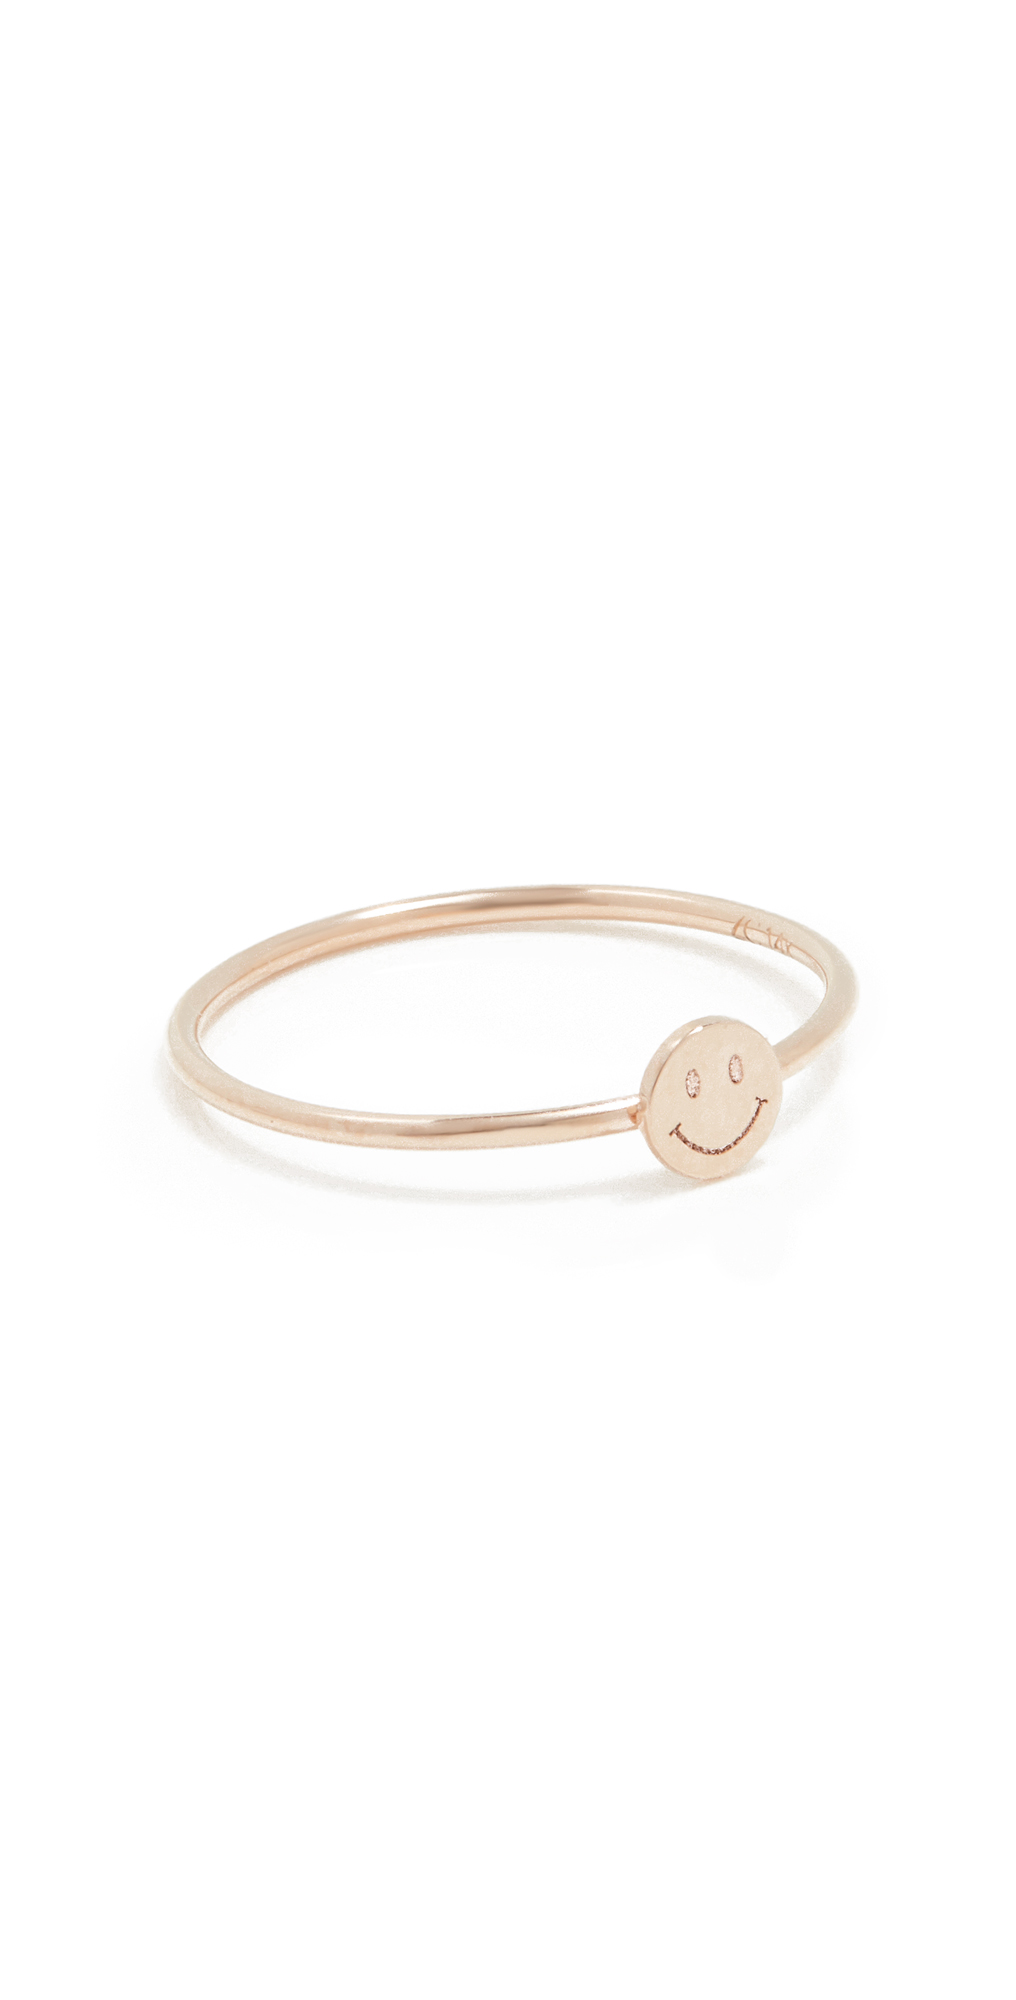 Zoë Chicco Itty Bitty Symbols Ring In Gold